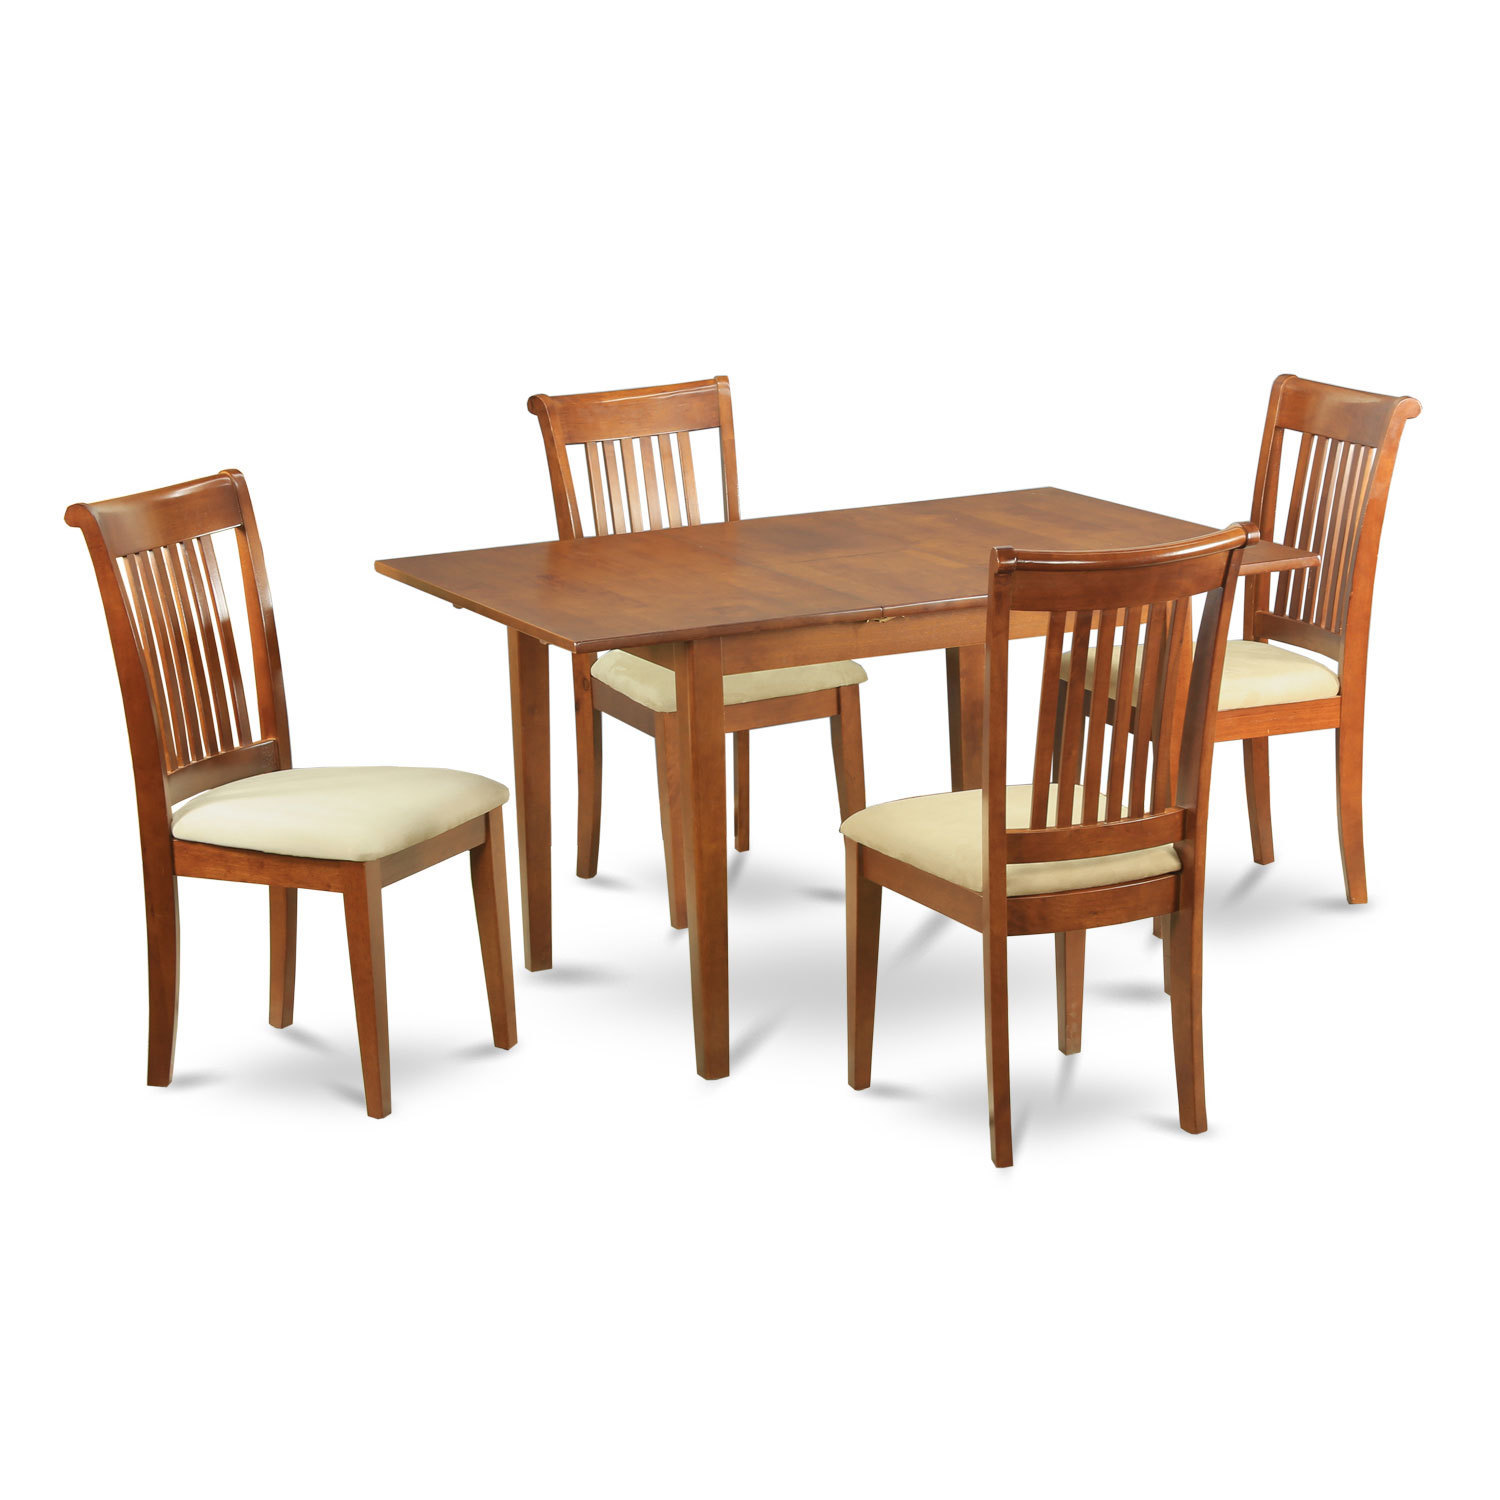 Small dinette set design homesfeed for Small dining table with stools